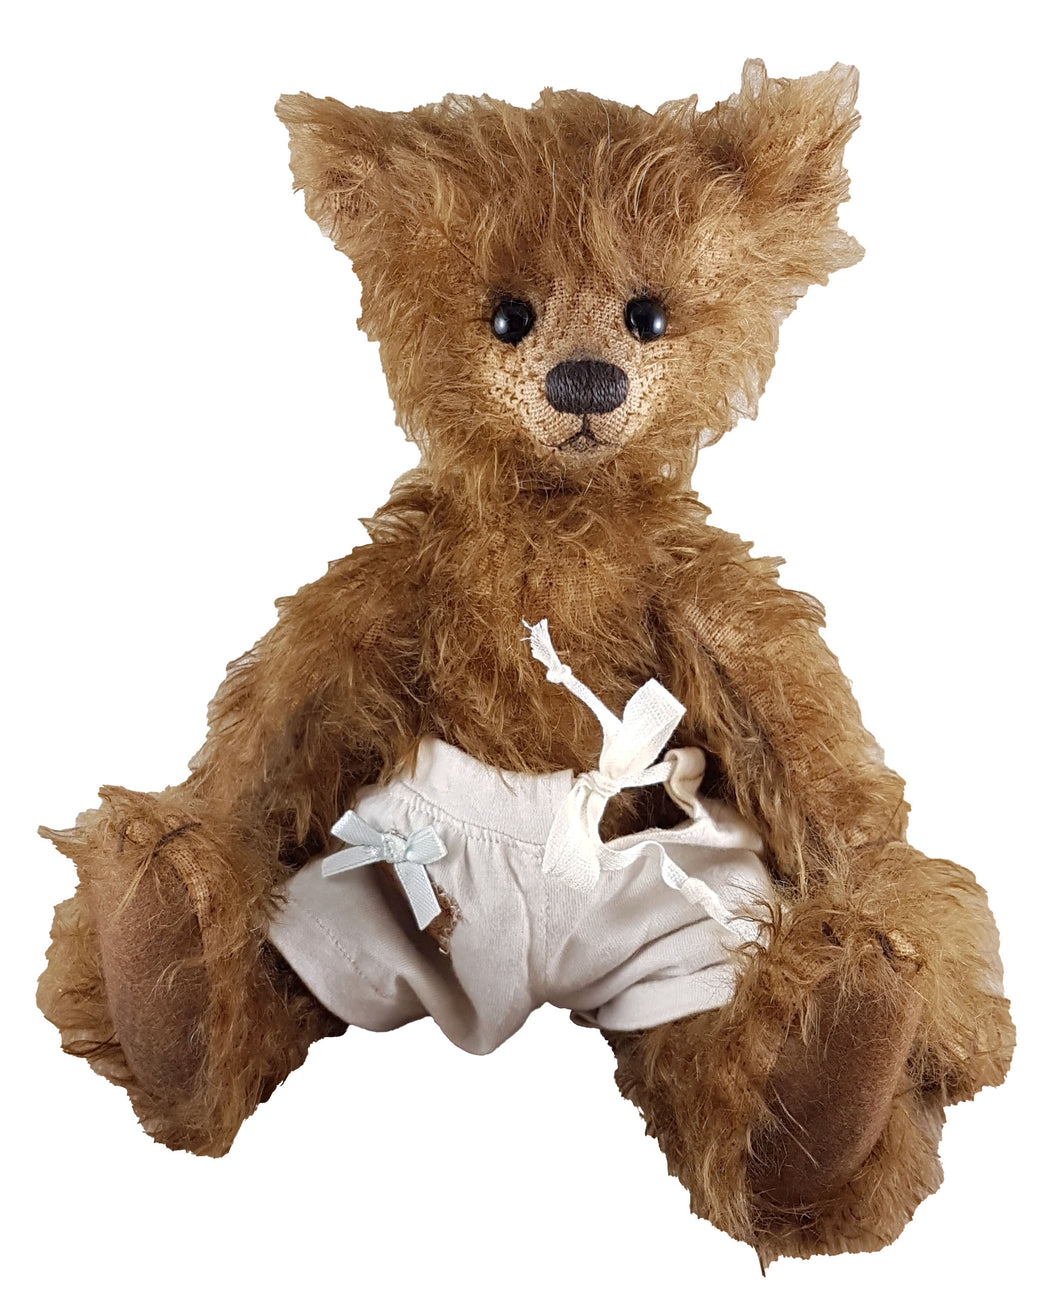 NEW 2021: TEDDY LEO / CLEMENS MOHAIR ARTIST LIMITED BEAR